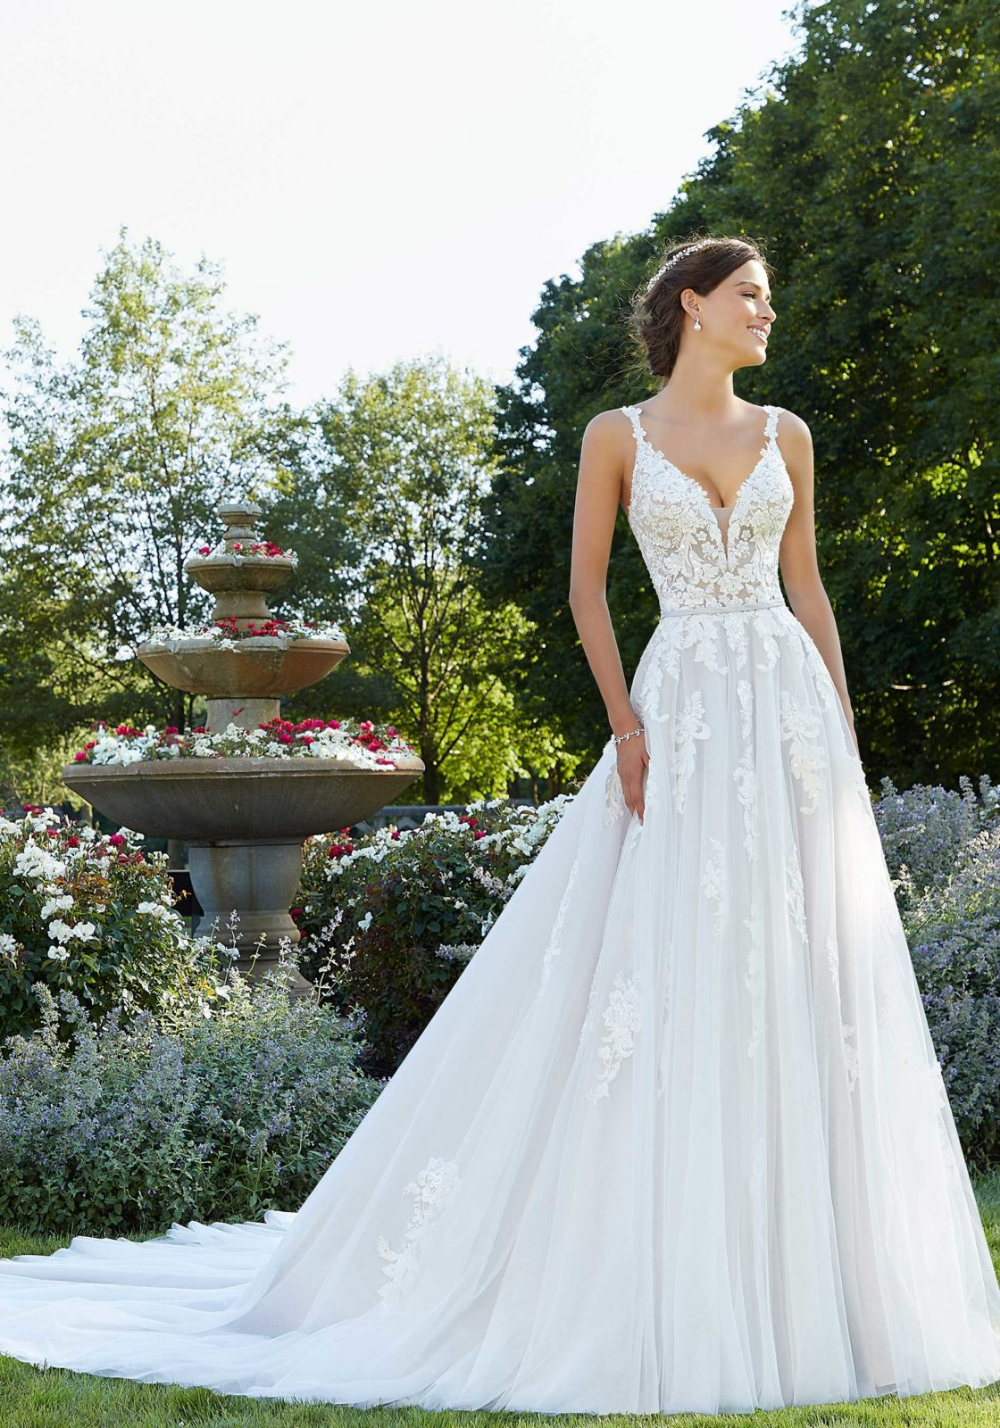 Sparrow Wedding Dress   Morilee   Bridal dresses, Ball gowns ...